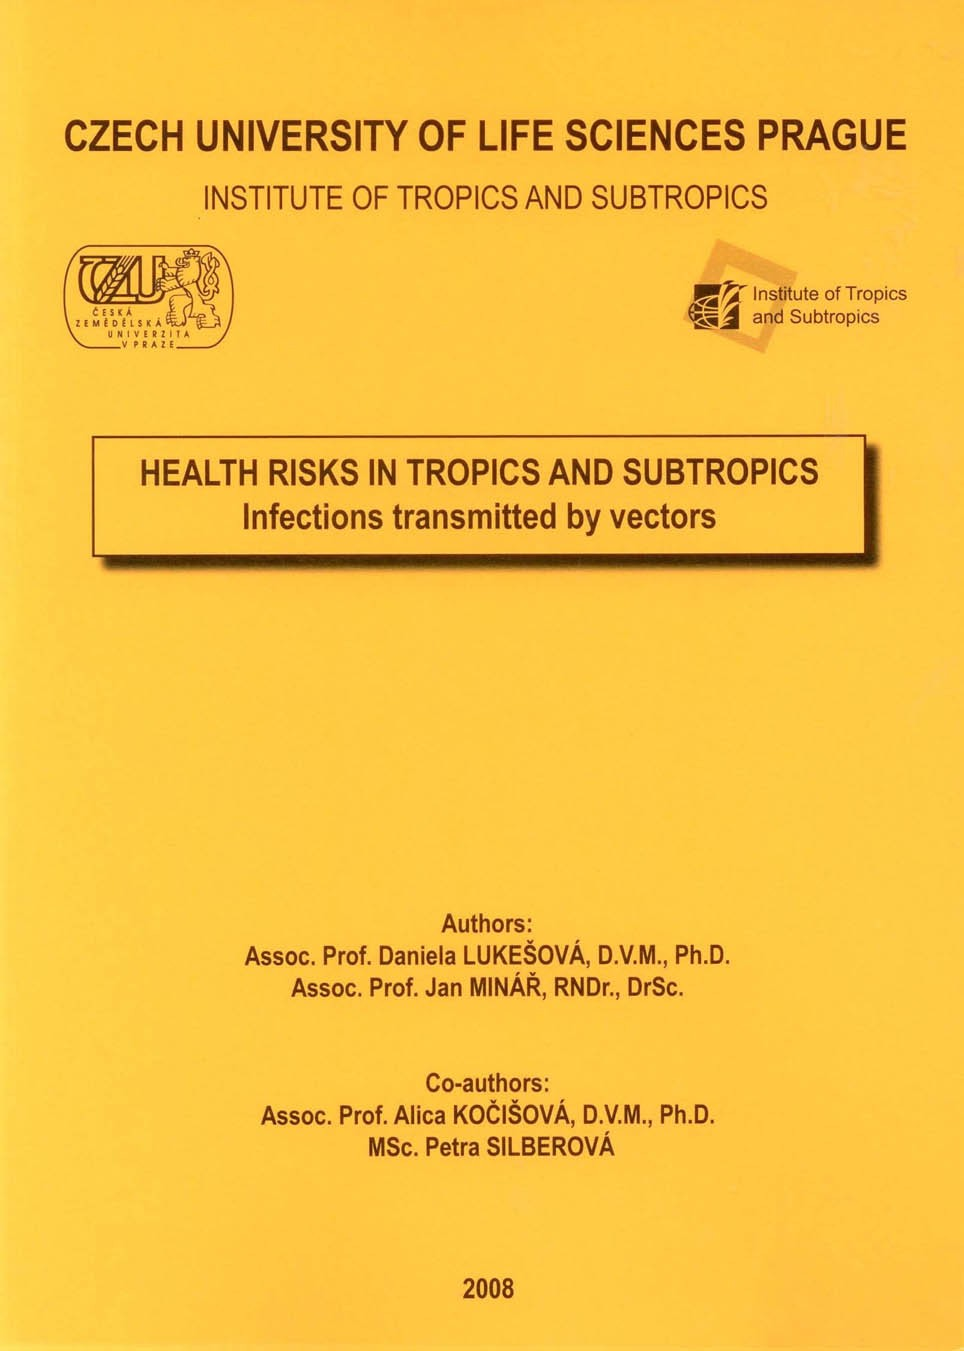 Health Risks in Tropics and Subtropics Infections Transmitted by Vectors